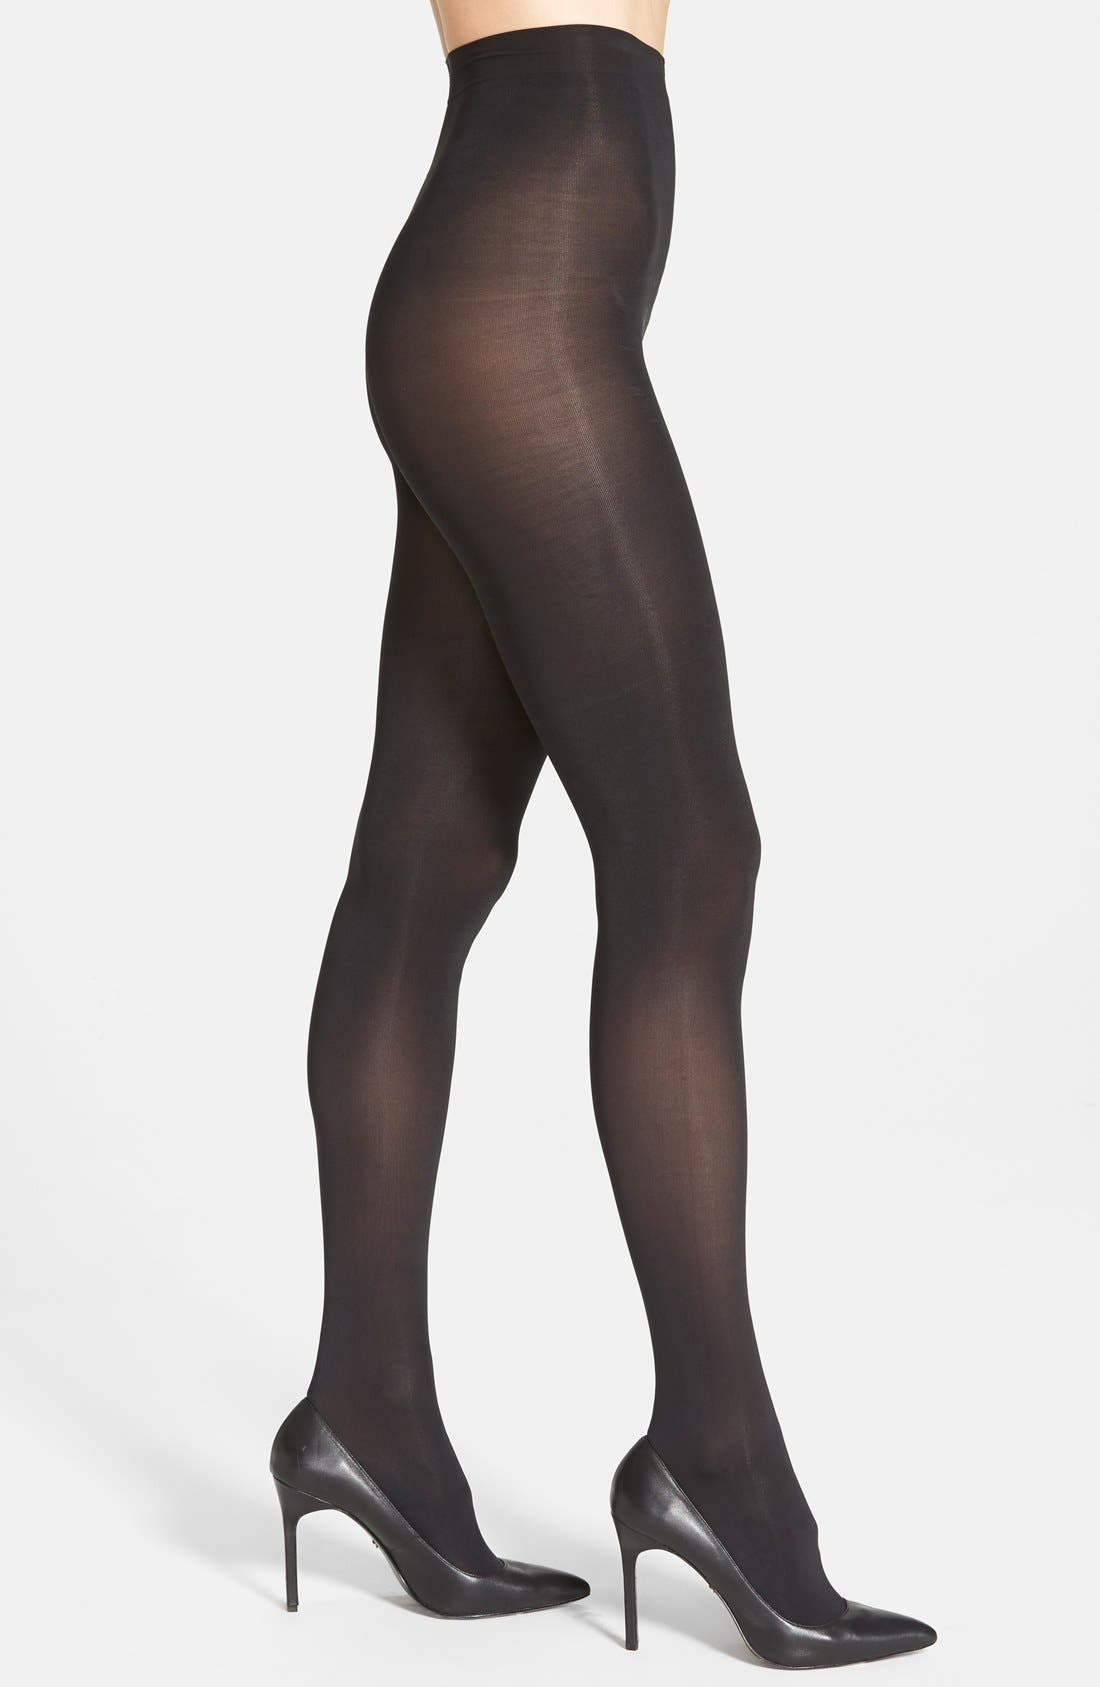 Donna Karan 'Evolution' Satin Jersey Tights,                         Main,                         color, Black